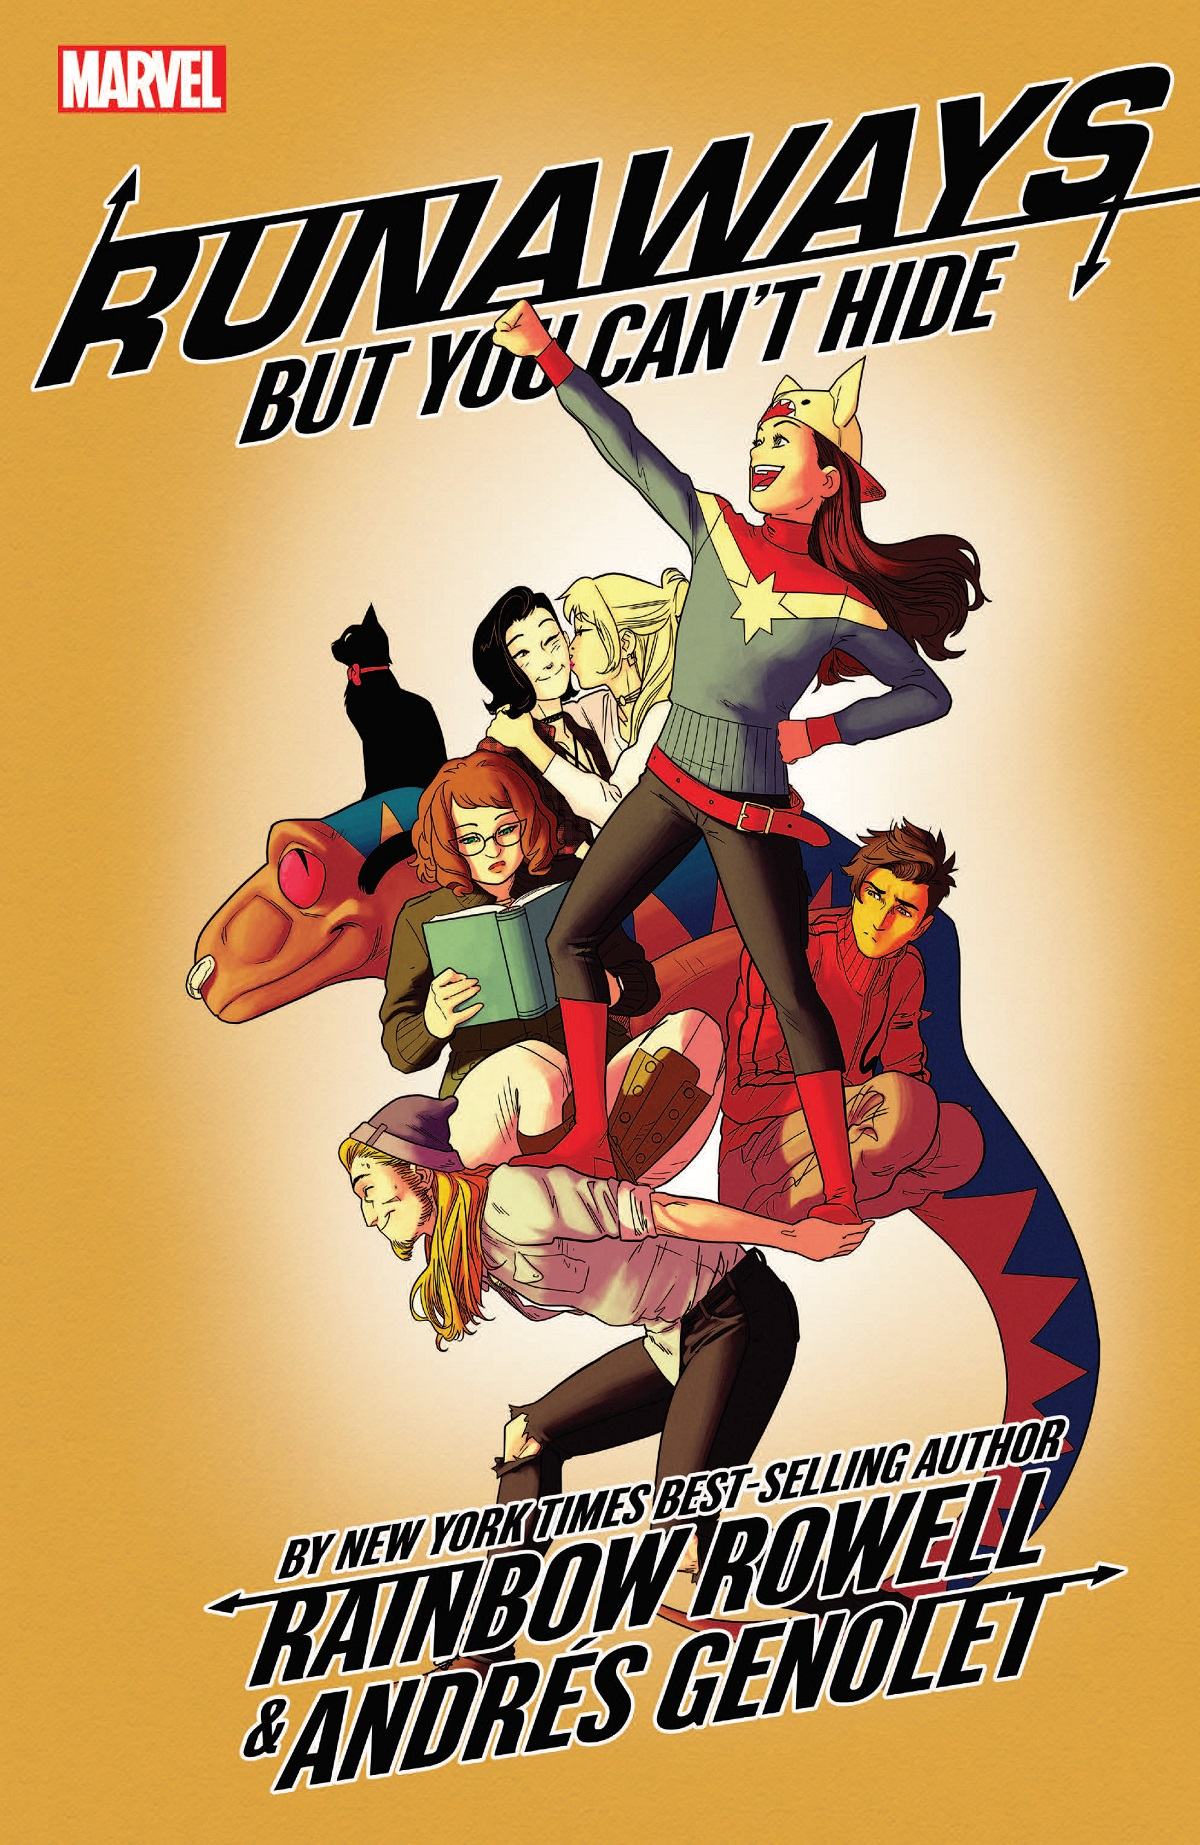 Runaways, Vol. 4: But You Can't Hide by Andres Genolet, Rainbow Rowell, Kris Anka